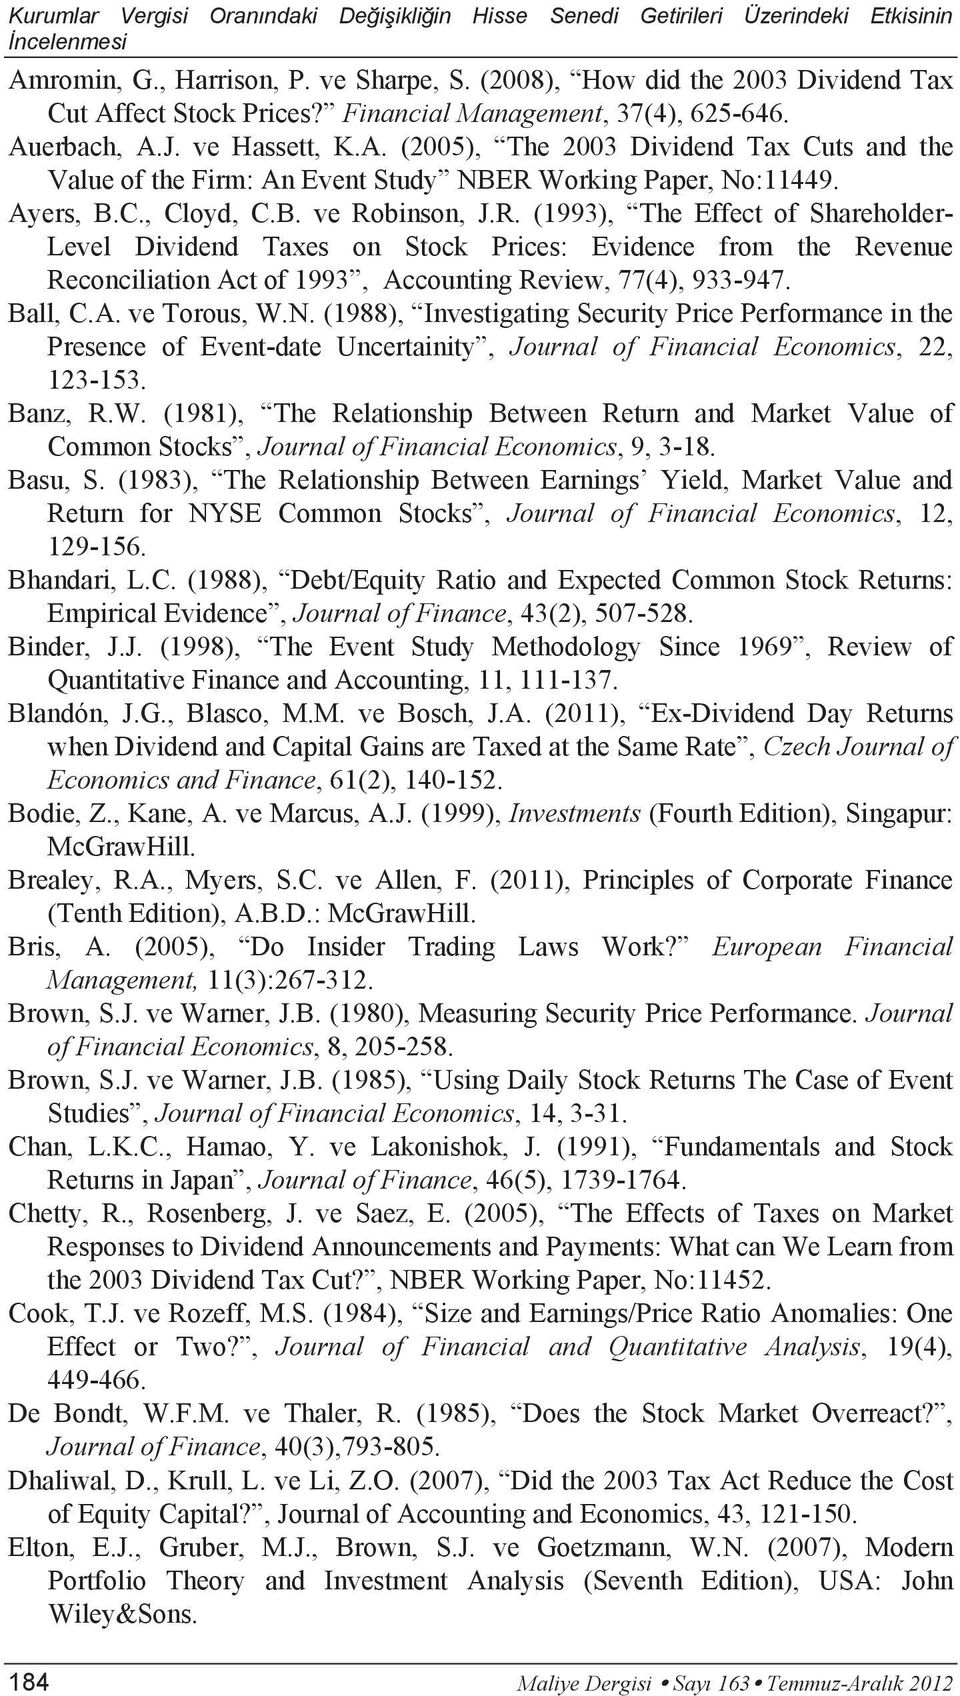 Ball, C.A. ve Torous, W.N. (1988), Investigating Security Price Performance in the Presence of Event-date Uncertainity, Journal of Financial Economics, 22, 123-153. Banz, R.W. (1981), The Relationship Between Return and Market Value of Common Stocks, Journal of Financial Economics, 9, 3-18.